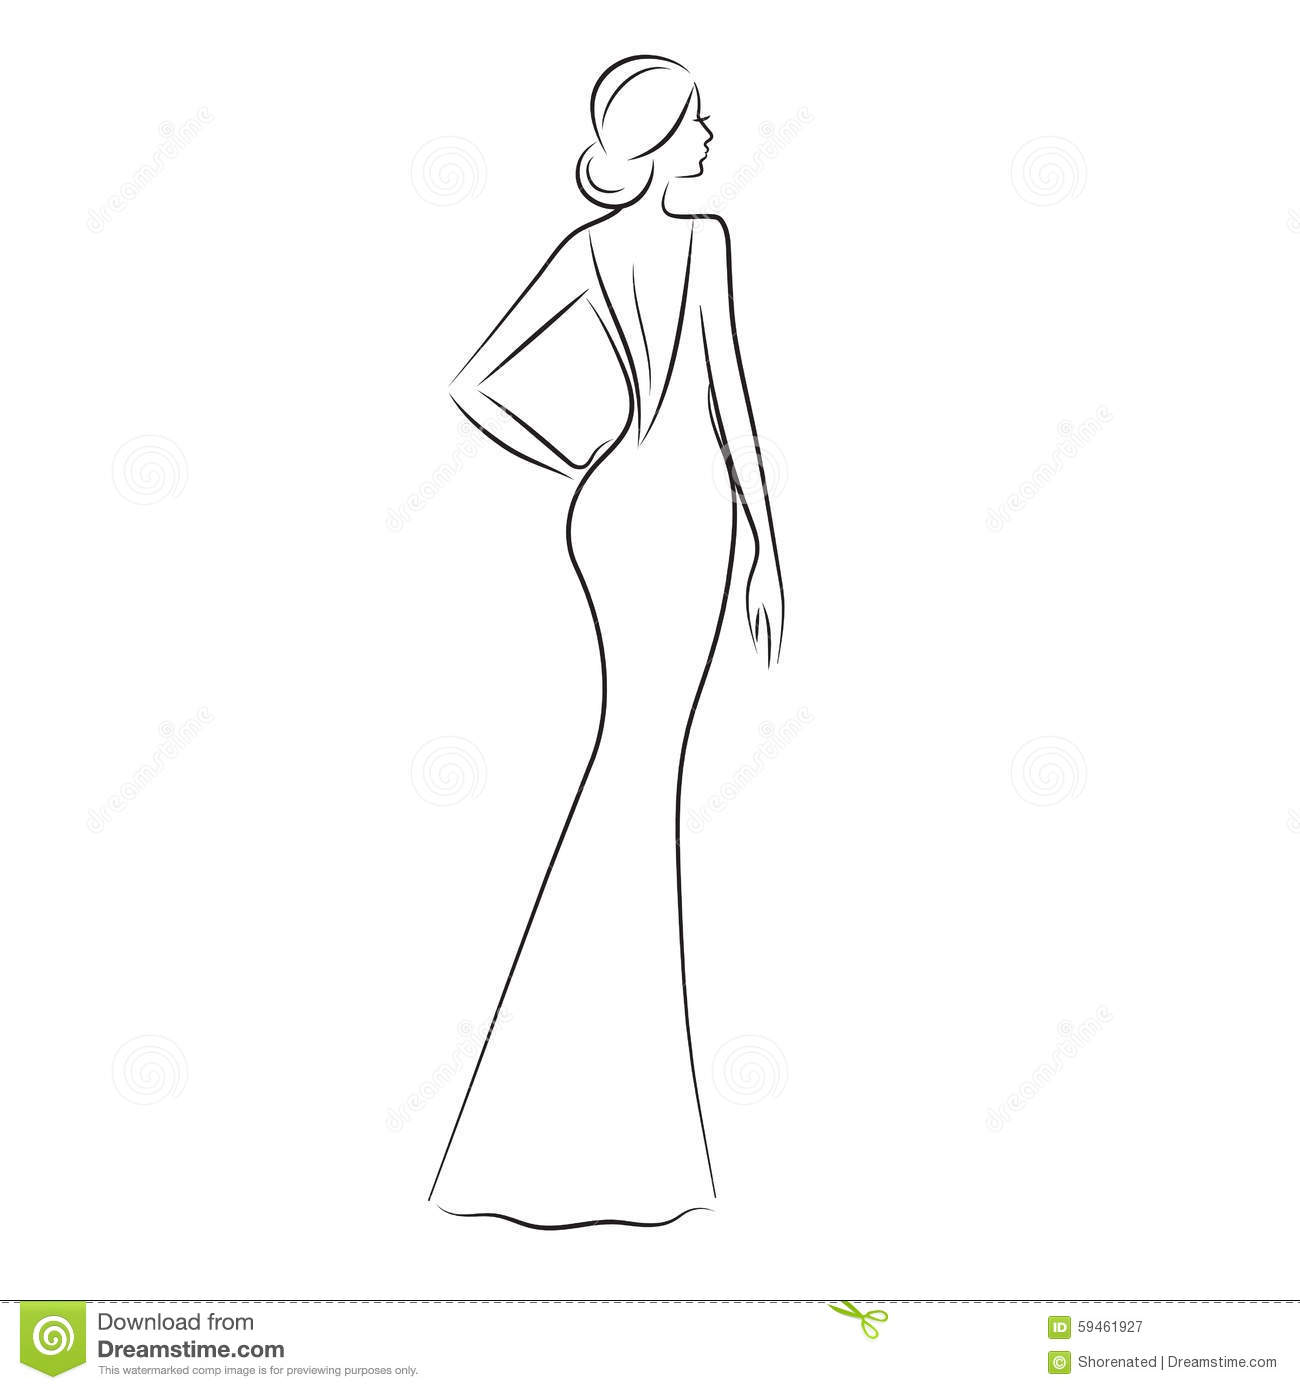 Sexy woman outline drawing